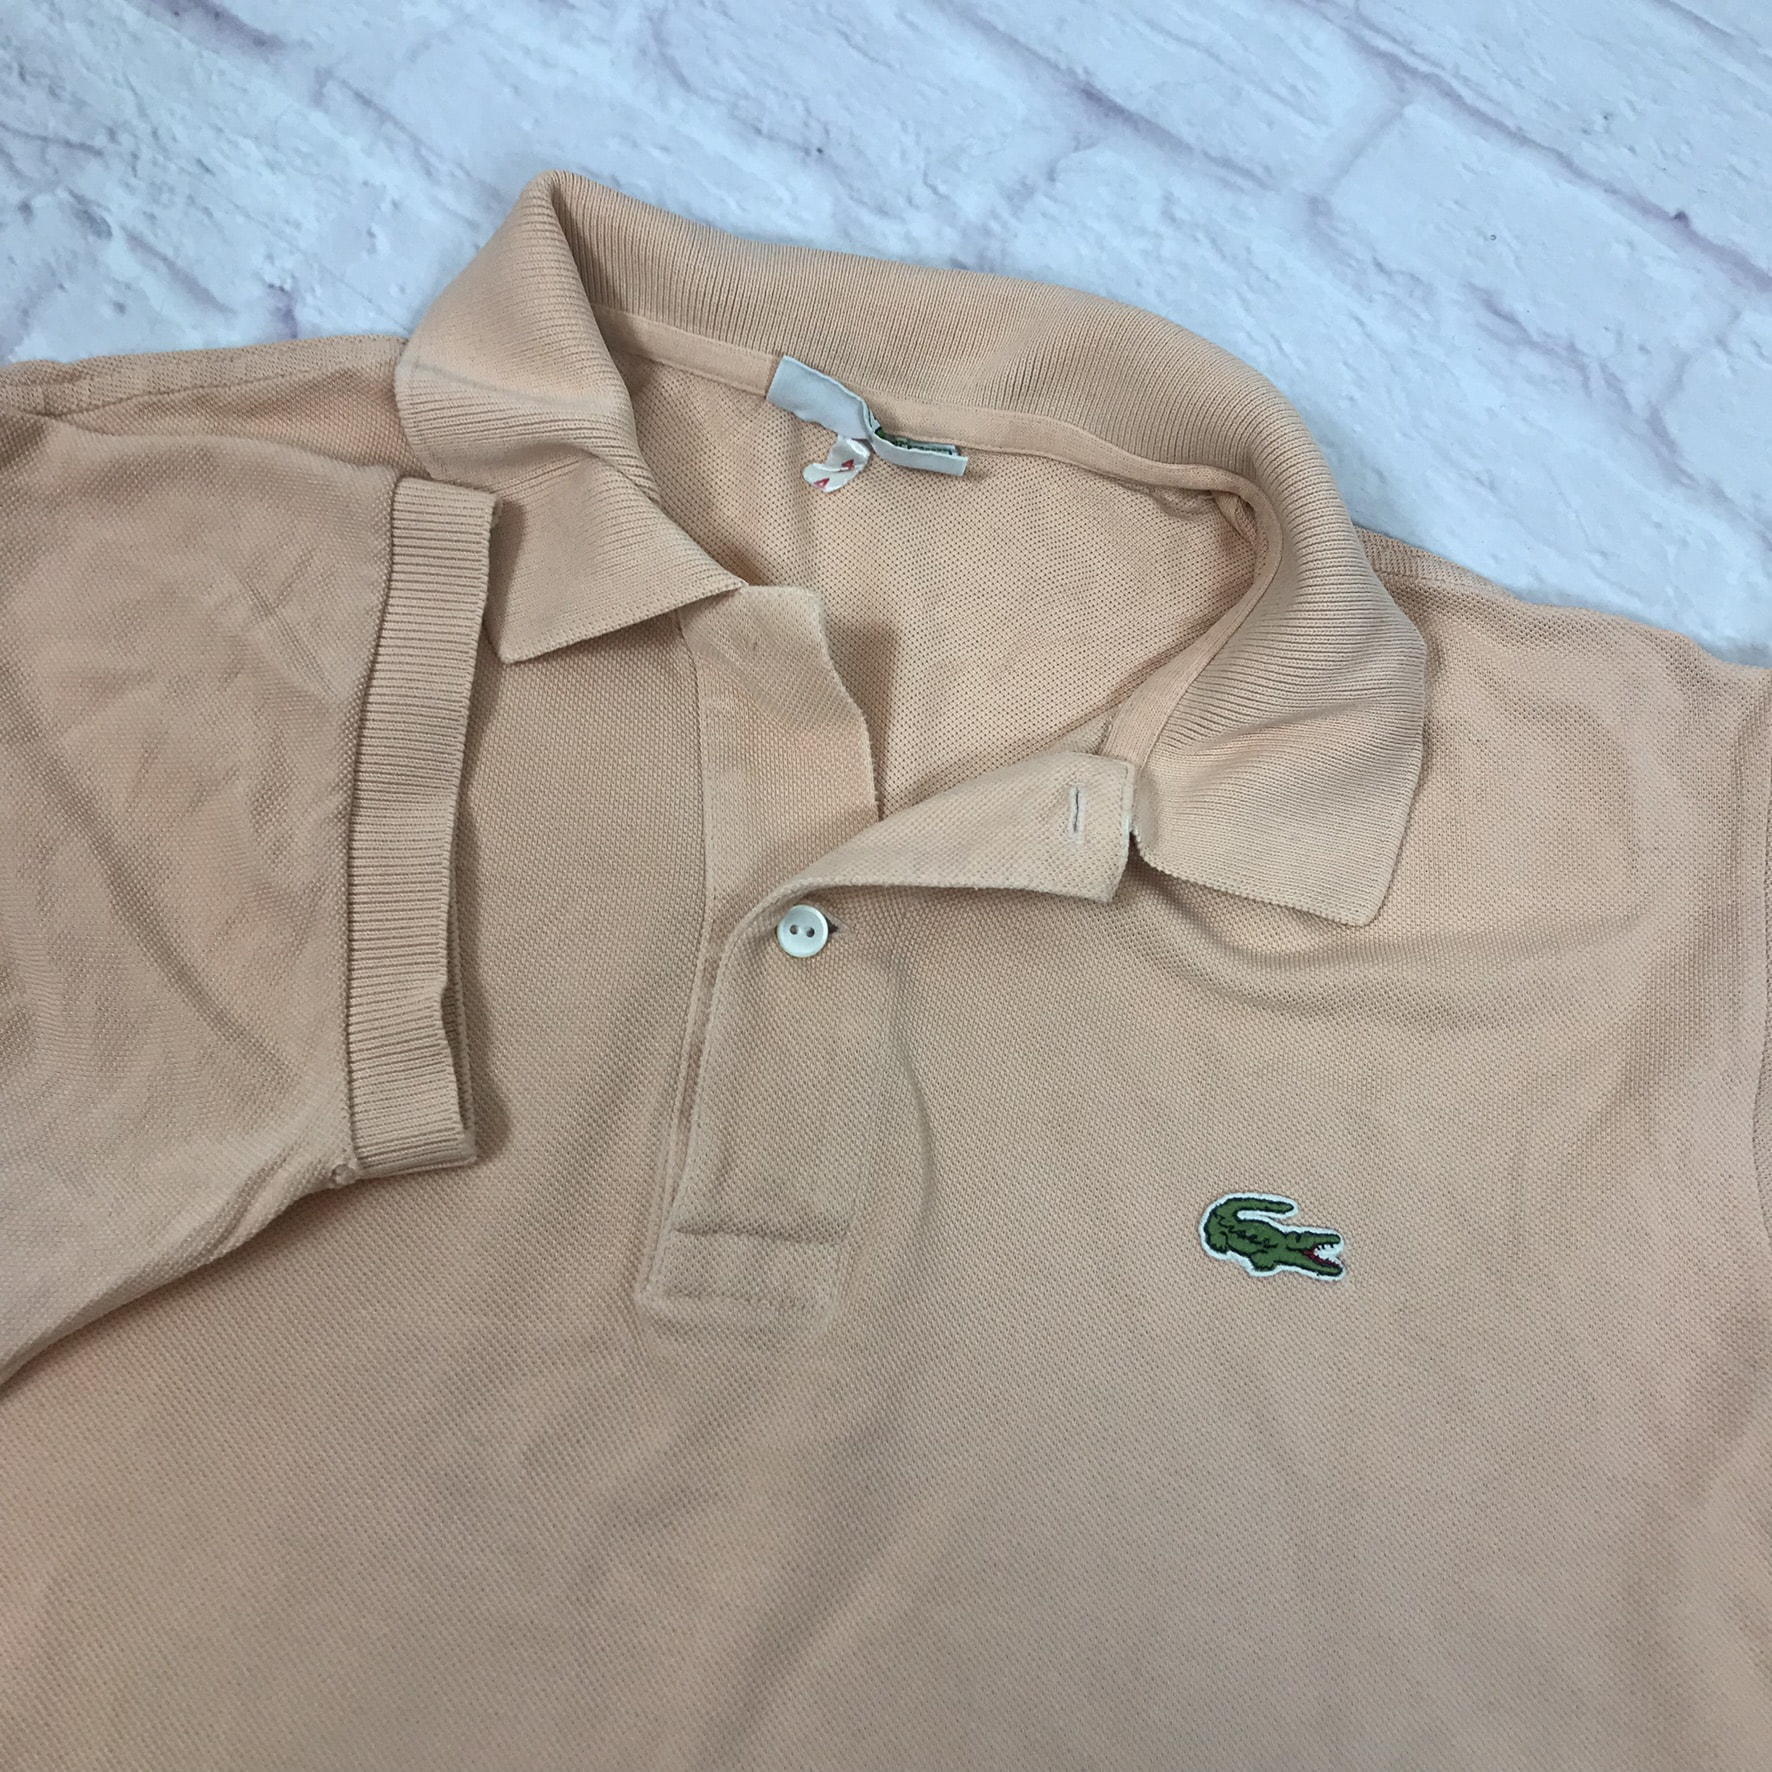 Unisex Vintage Lacoste polo shirt in pink has a small logo on the front